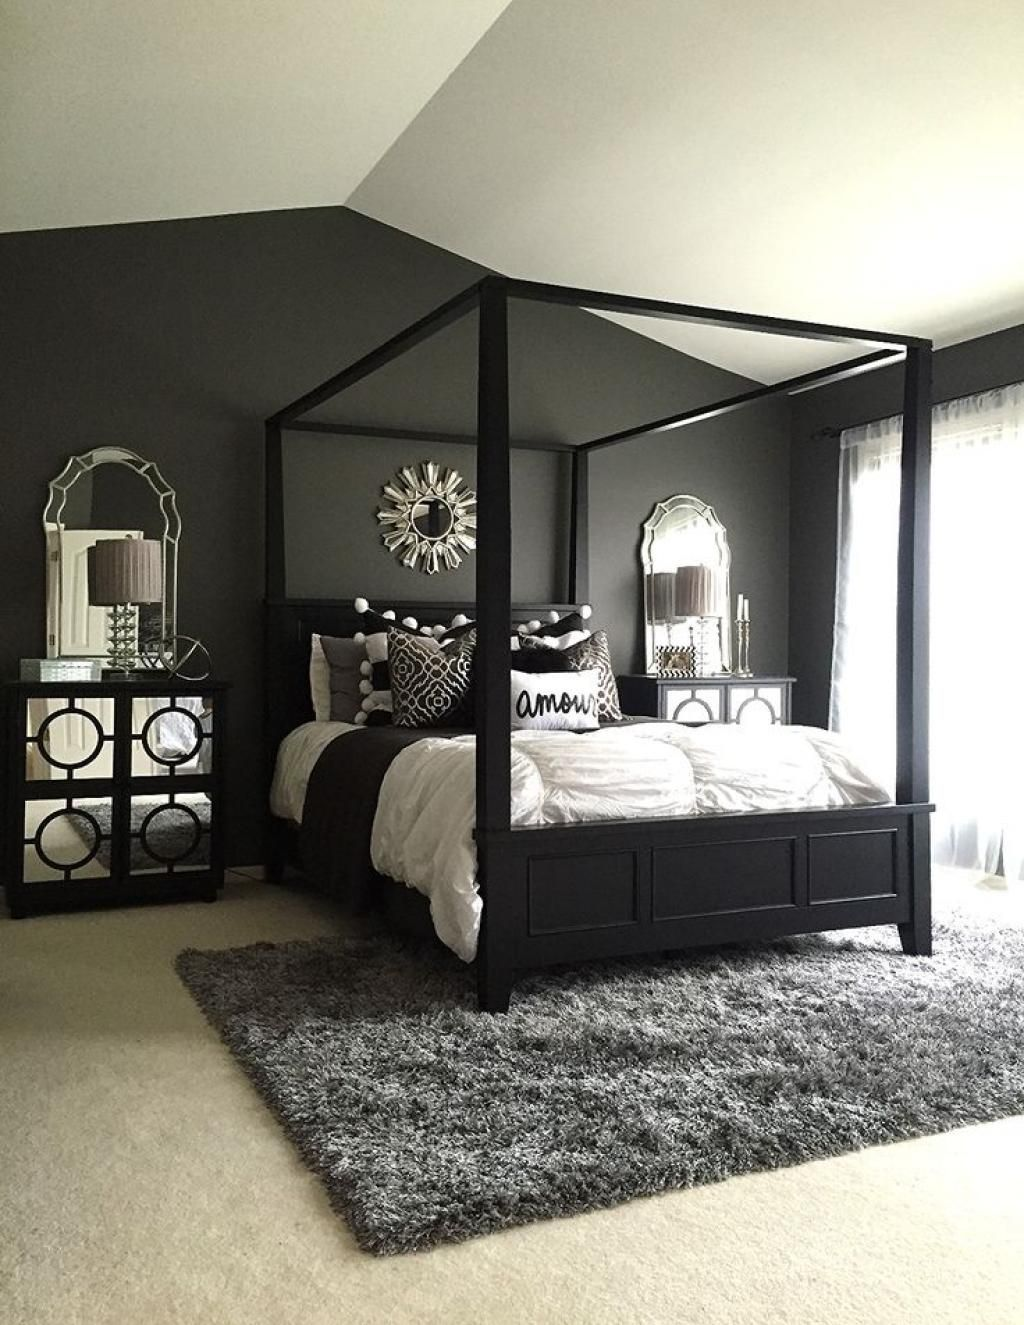 25 Elegant Black Bedroom Decorating Ideas Black Master Bedroom Master Bedrooms Decor Bedroom Makeover